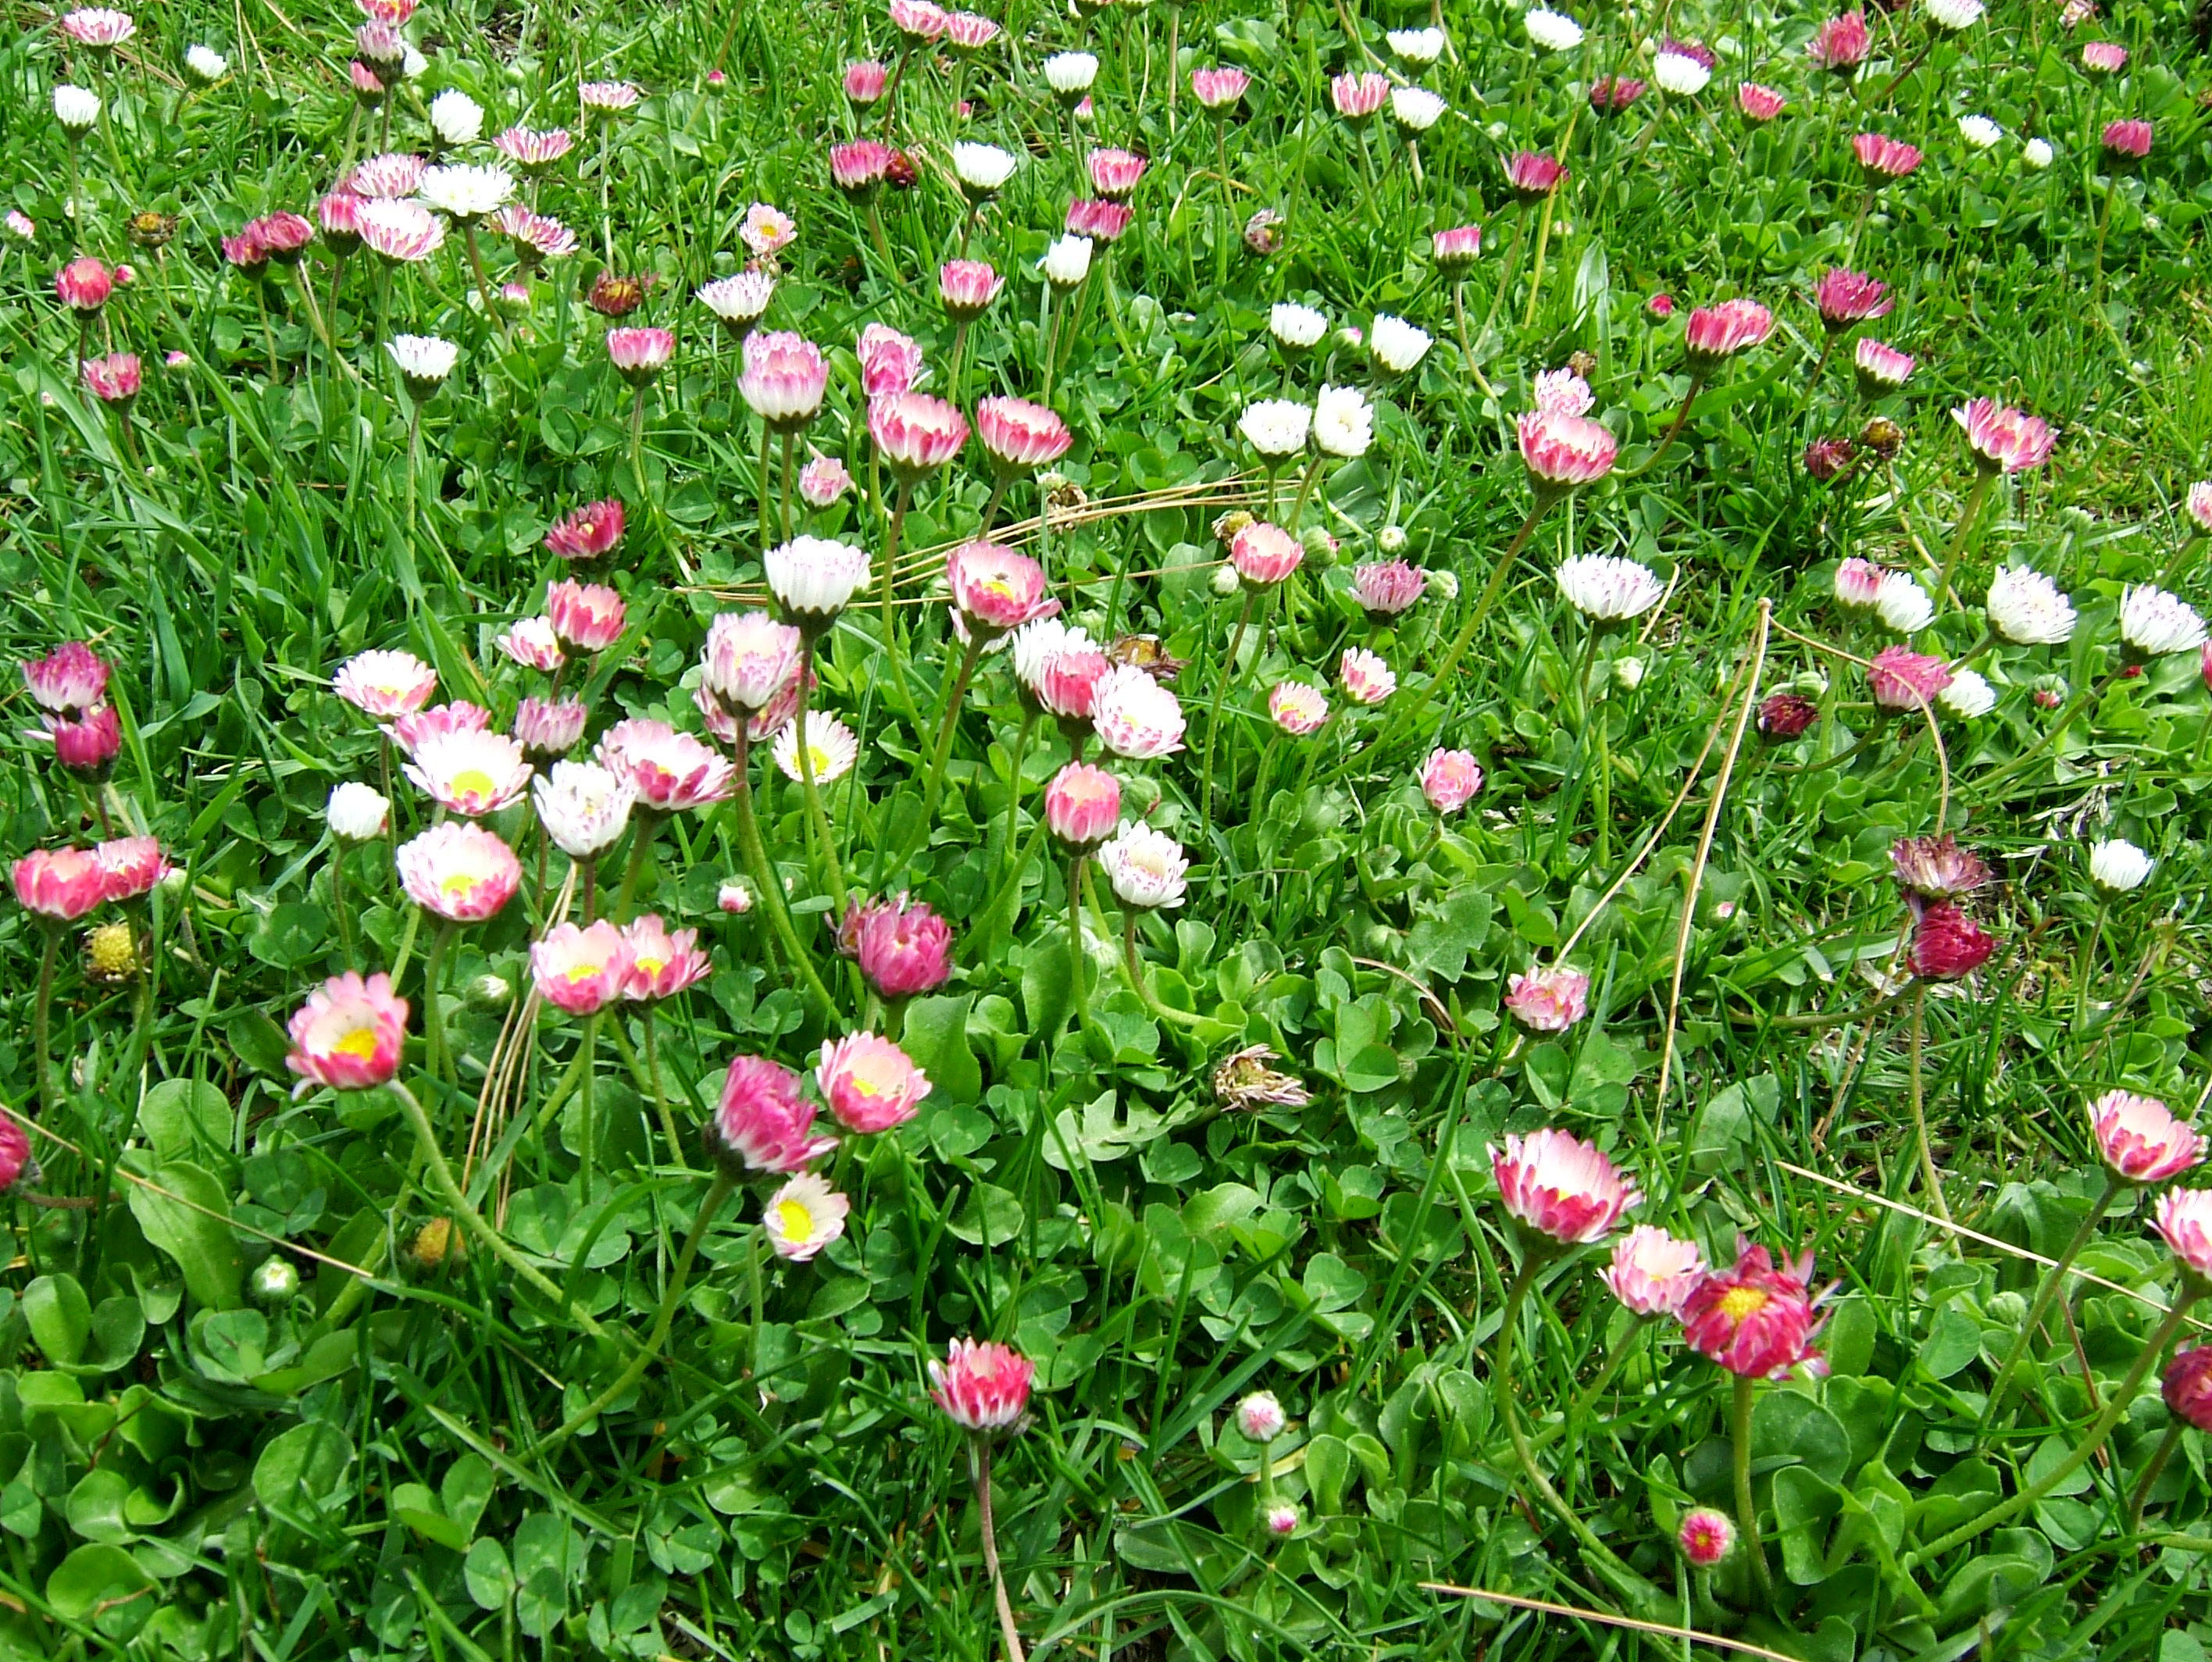 India Kashmir Srinagar Wild Flowers 04